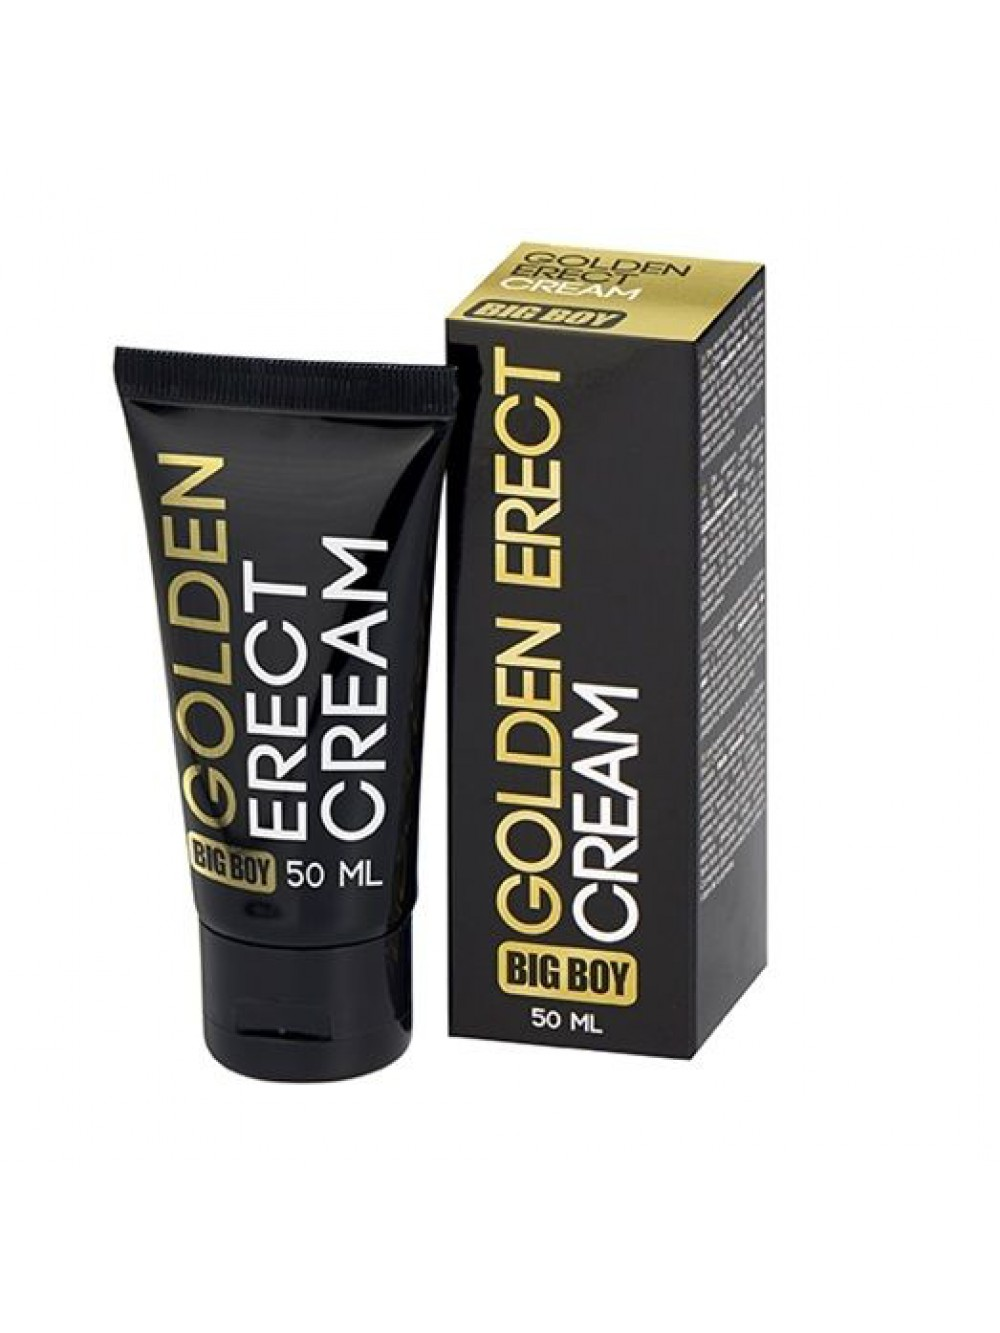 BIG BOY GOLDEN ERECT CREAM